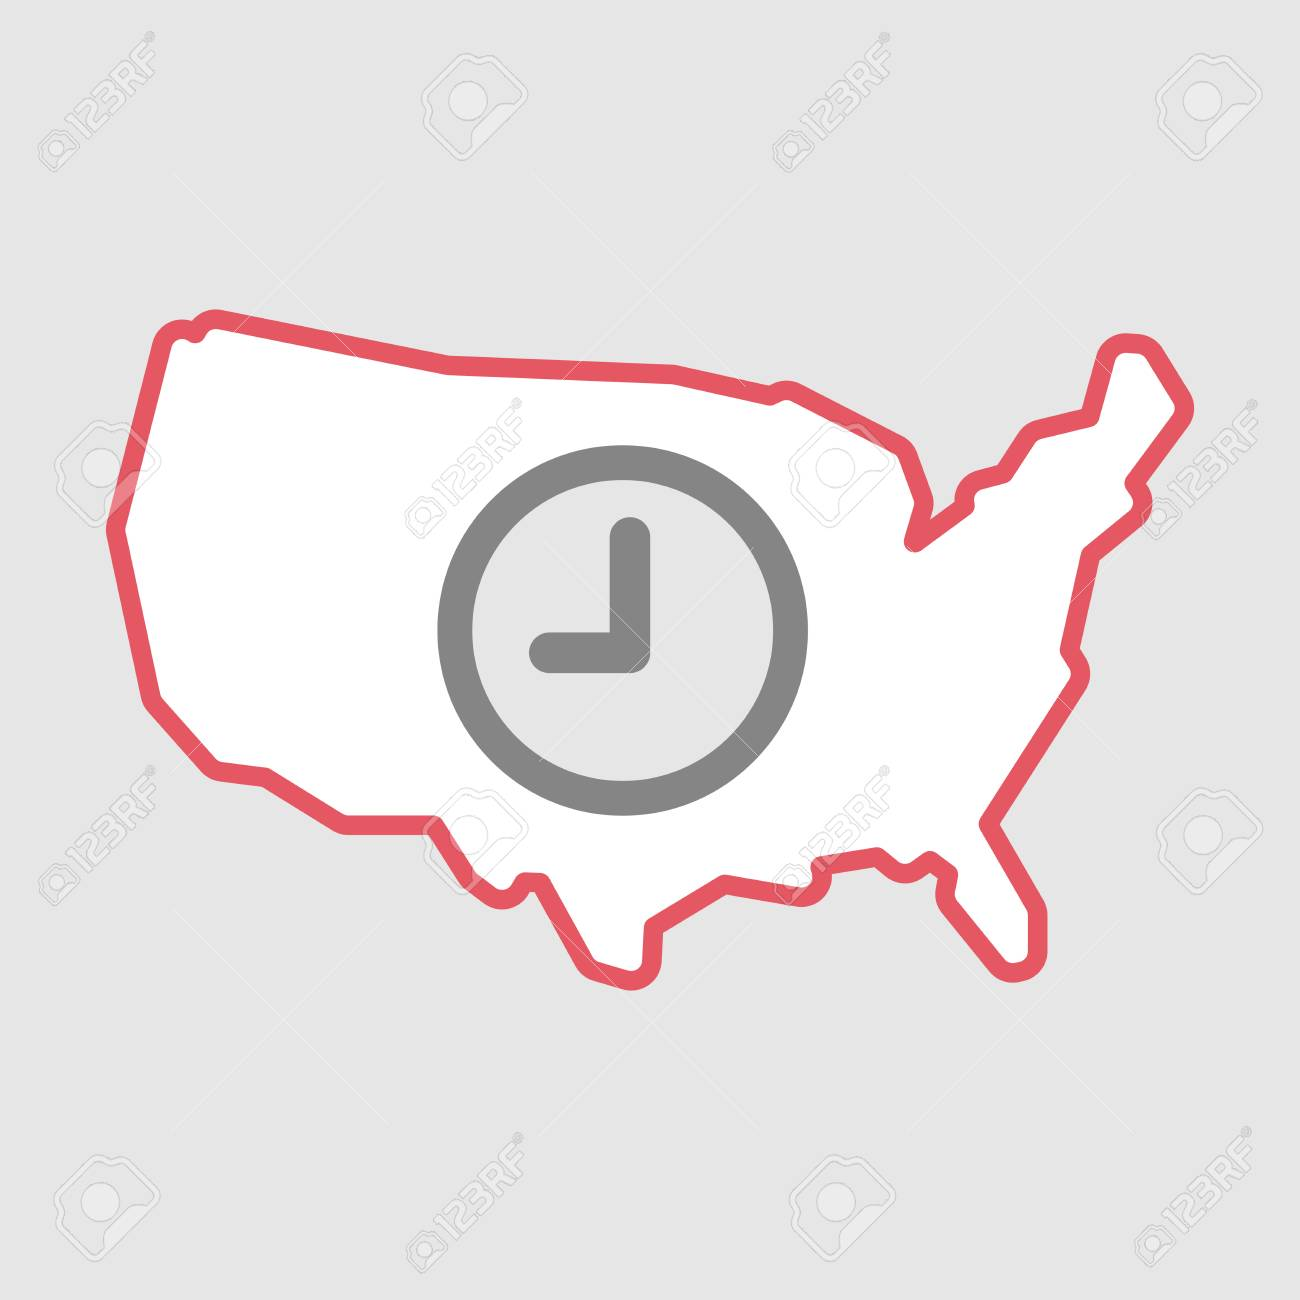 Illustration Of An Isolated Line Art Usa Map Icon With A Clock